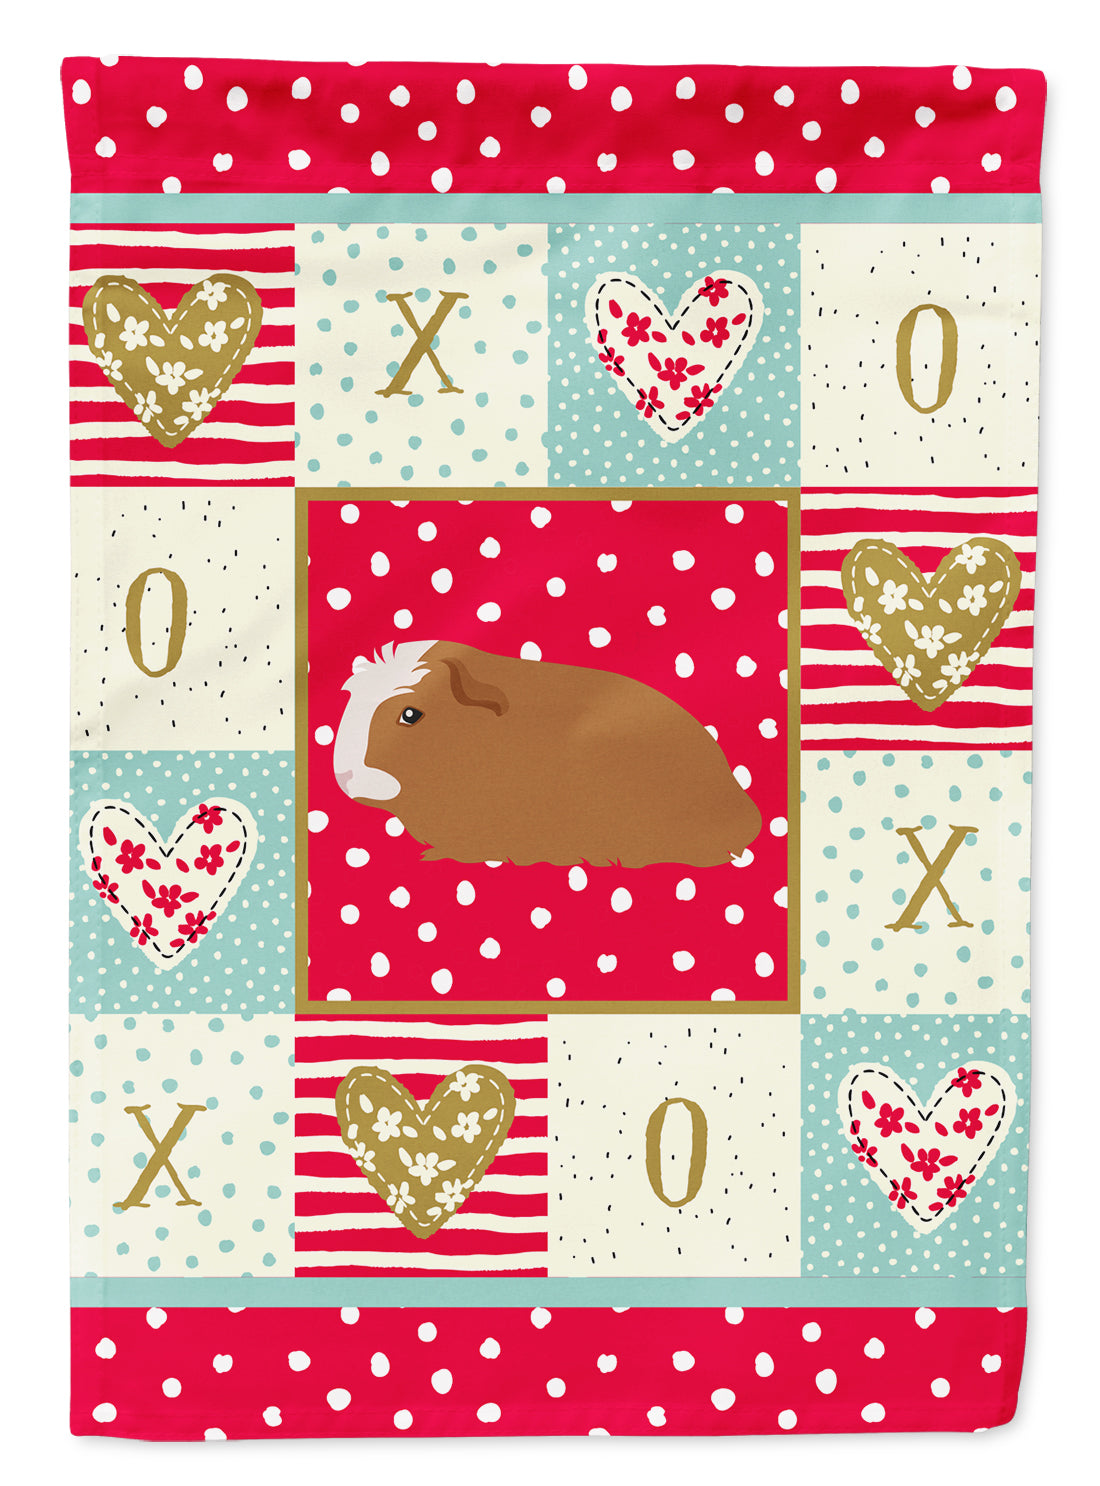 Crested Guinea Pig Love Flag Canvas House Size CK5428CHF by Caroline's Treasures